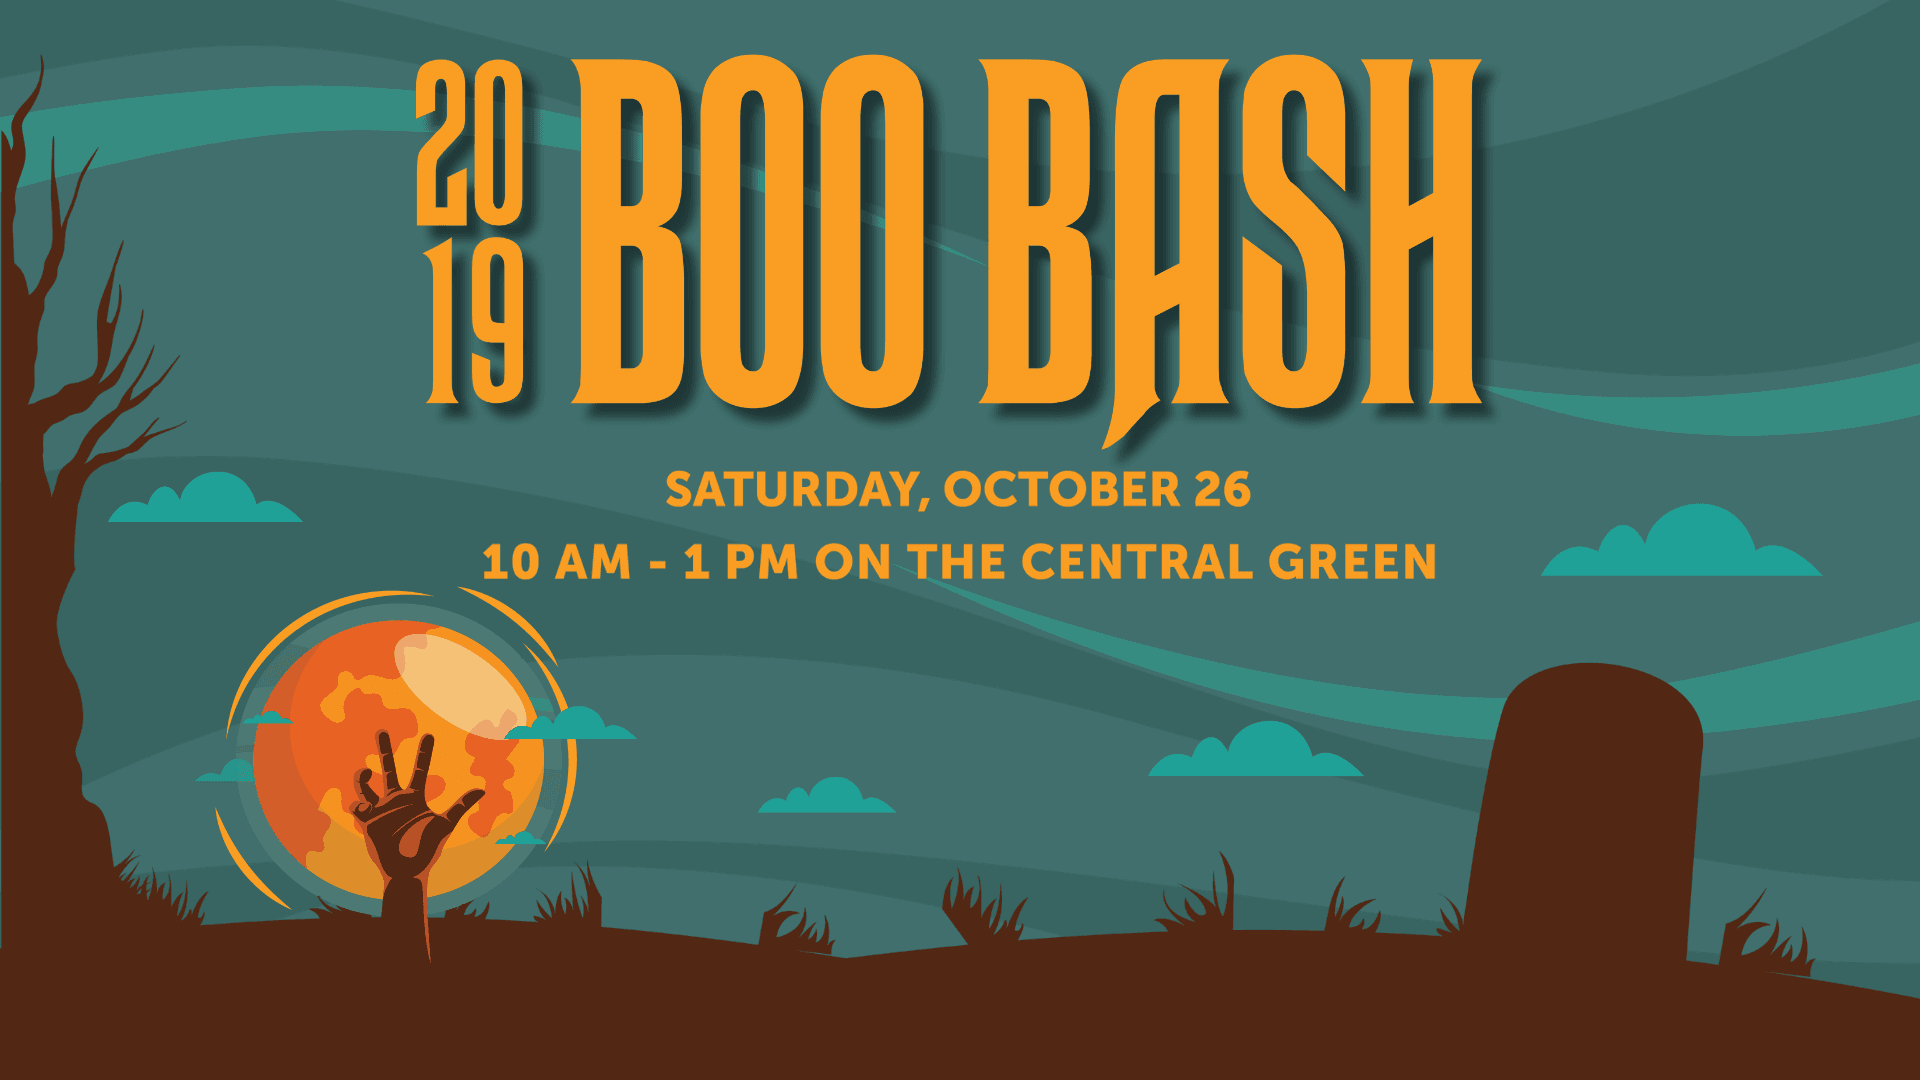 Boo Bash, saturday, october 26, 10 am - 1 pm on the central green